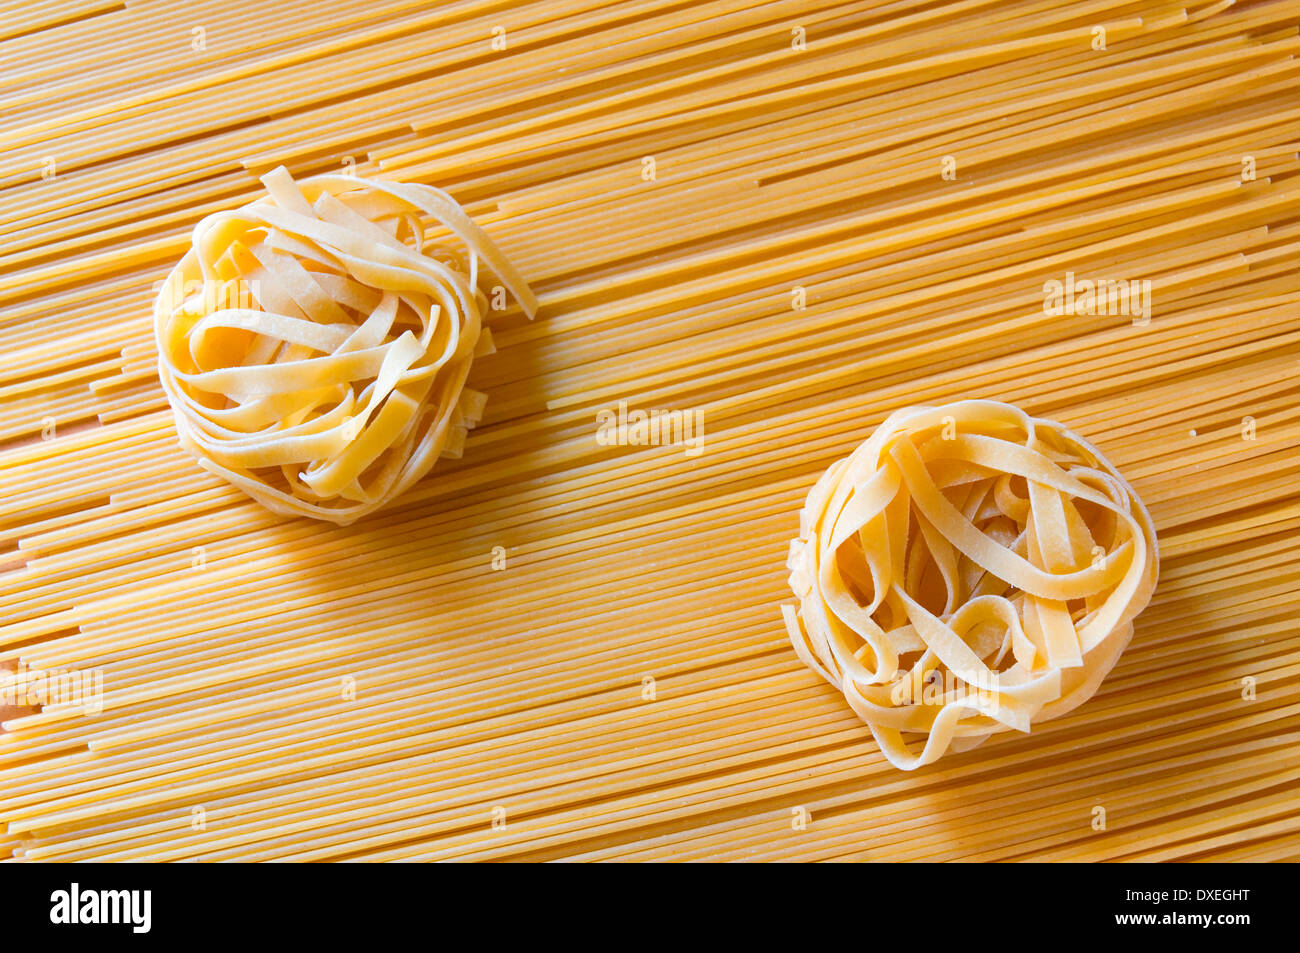 Pasta composition - Stock Image